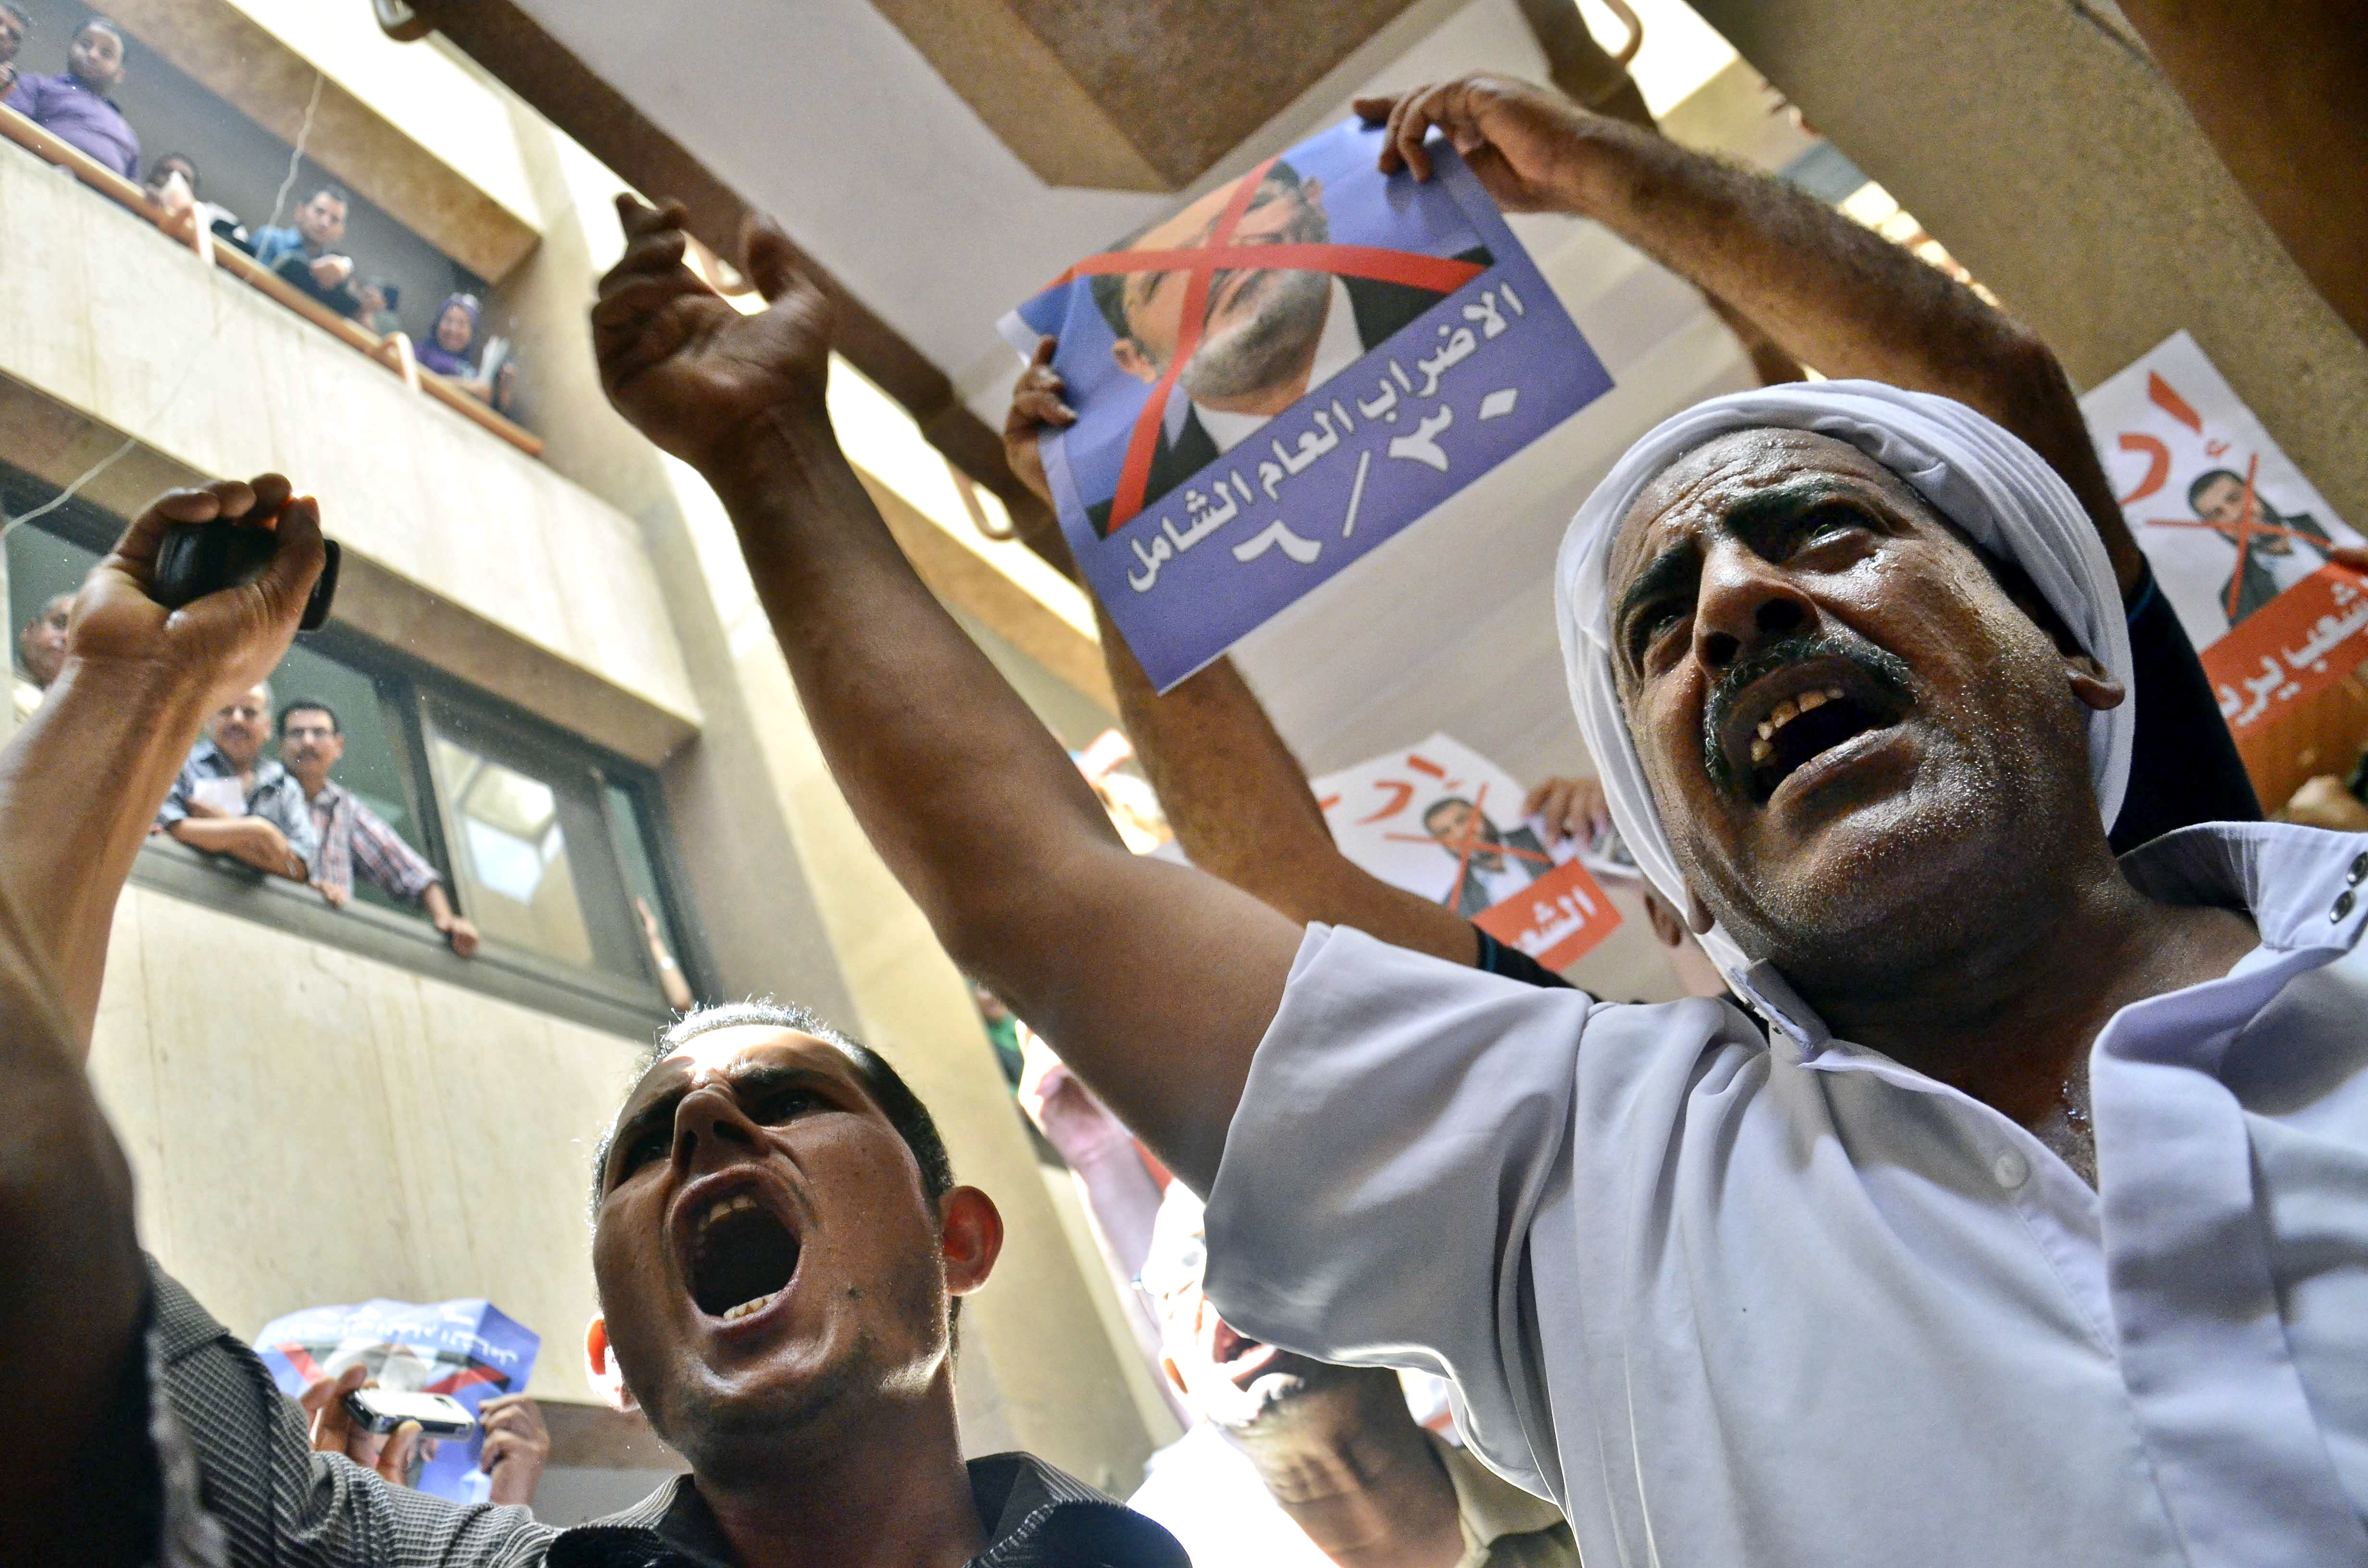 """Protesters chant slogans against Egyptian President Mohammed Morsi at a court in Ismailia, 139 Kilometers (86 miles) from Cairo, Egypt, Sunday, June 23, 2013. An Egyptian court on Sunday said Muslim Brotherhood members conspired with Hamas, Hezbollah and local militants to storm a prison in 2011 and free 34 Brotherhood leaders, including Morsi. The poster, top center, in Arabic reads, """"the biggest strike of the year, 6/30.""""(AP Photo/Mostafa Darwish)"""